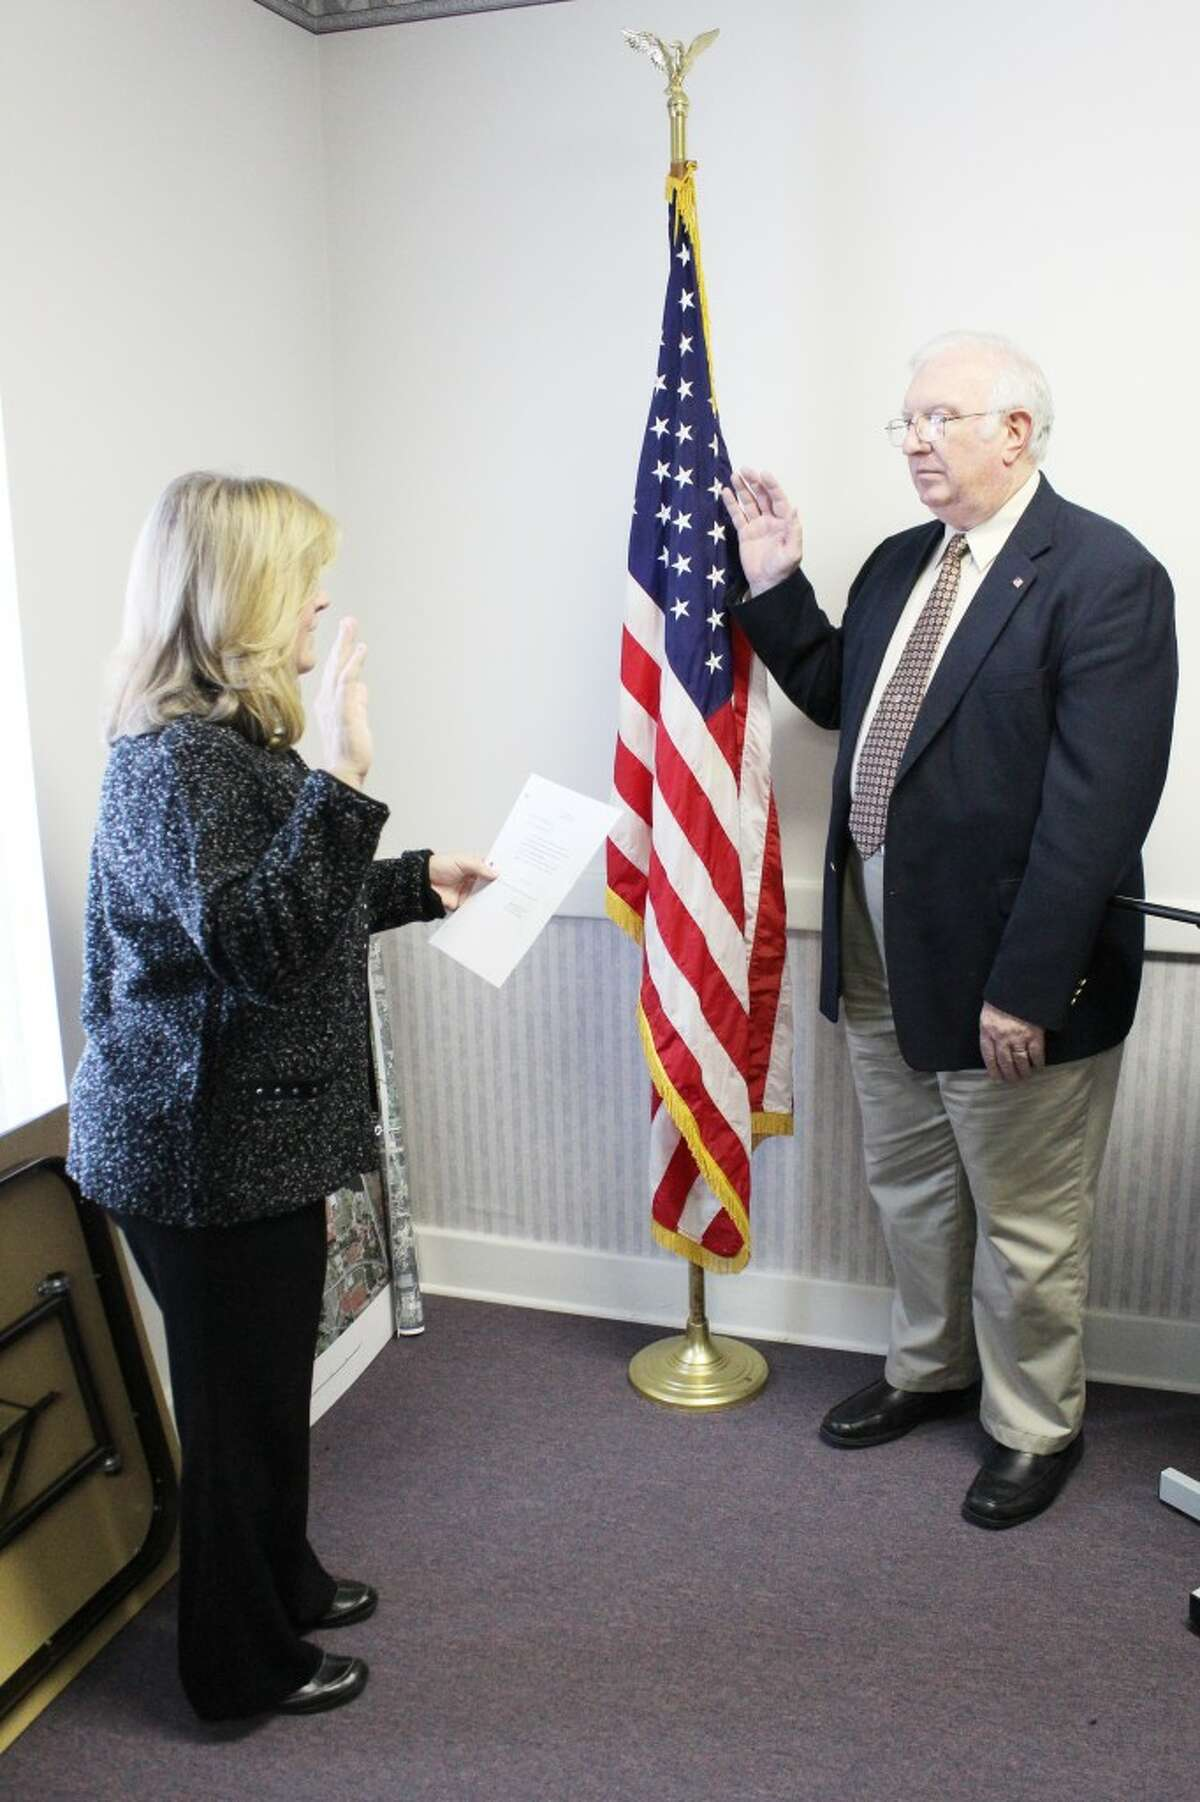 Prepared for the job: Ron Howell is sworn in as the interim city manager in Reed City. He is taking over after Ron Marek resigned in November.